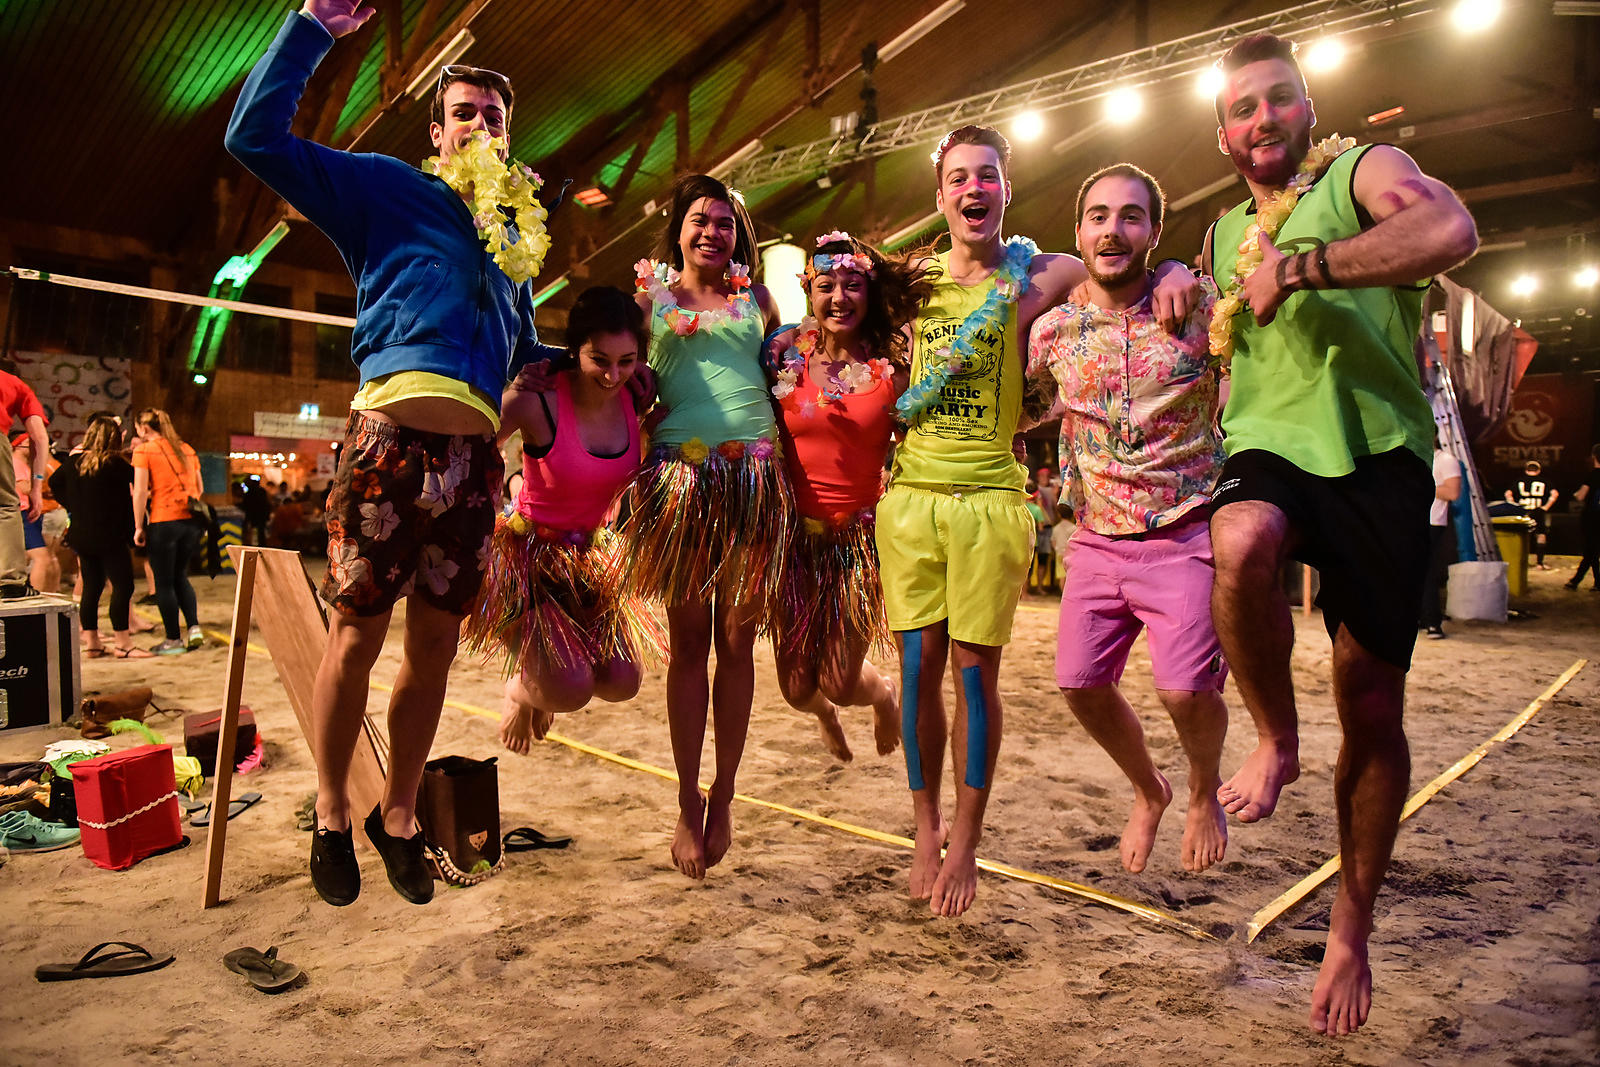 Tropicana-beach-contest-bassecourt-050